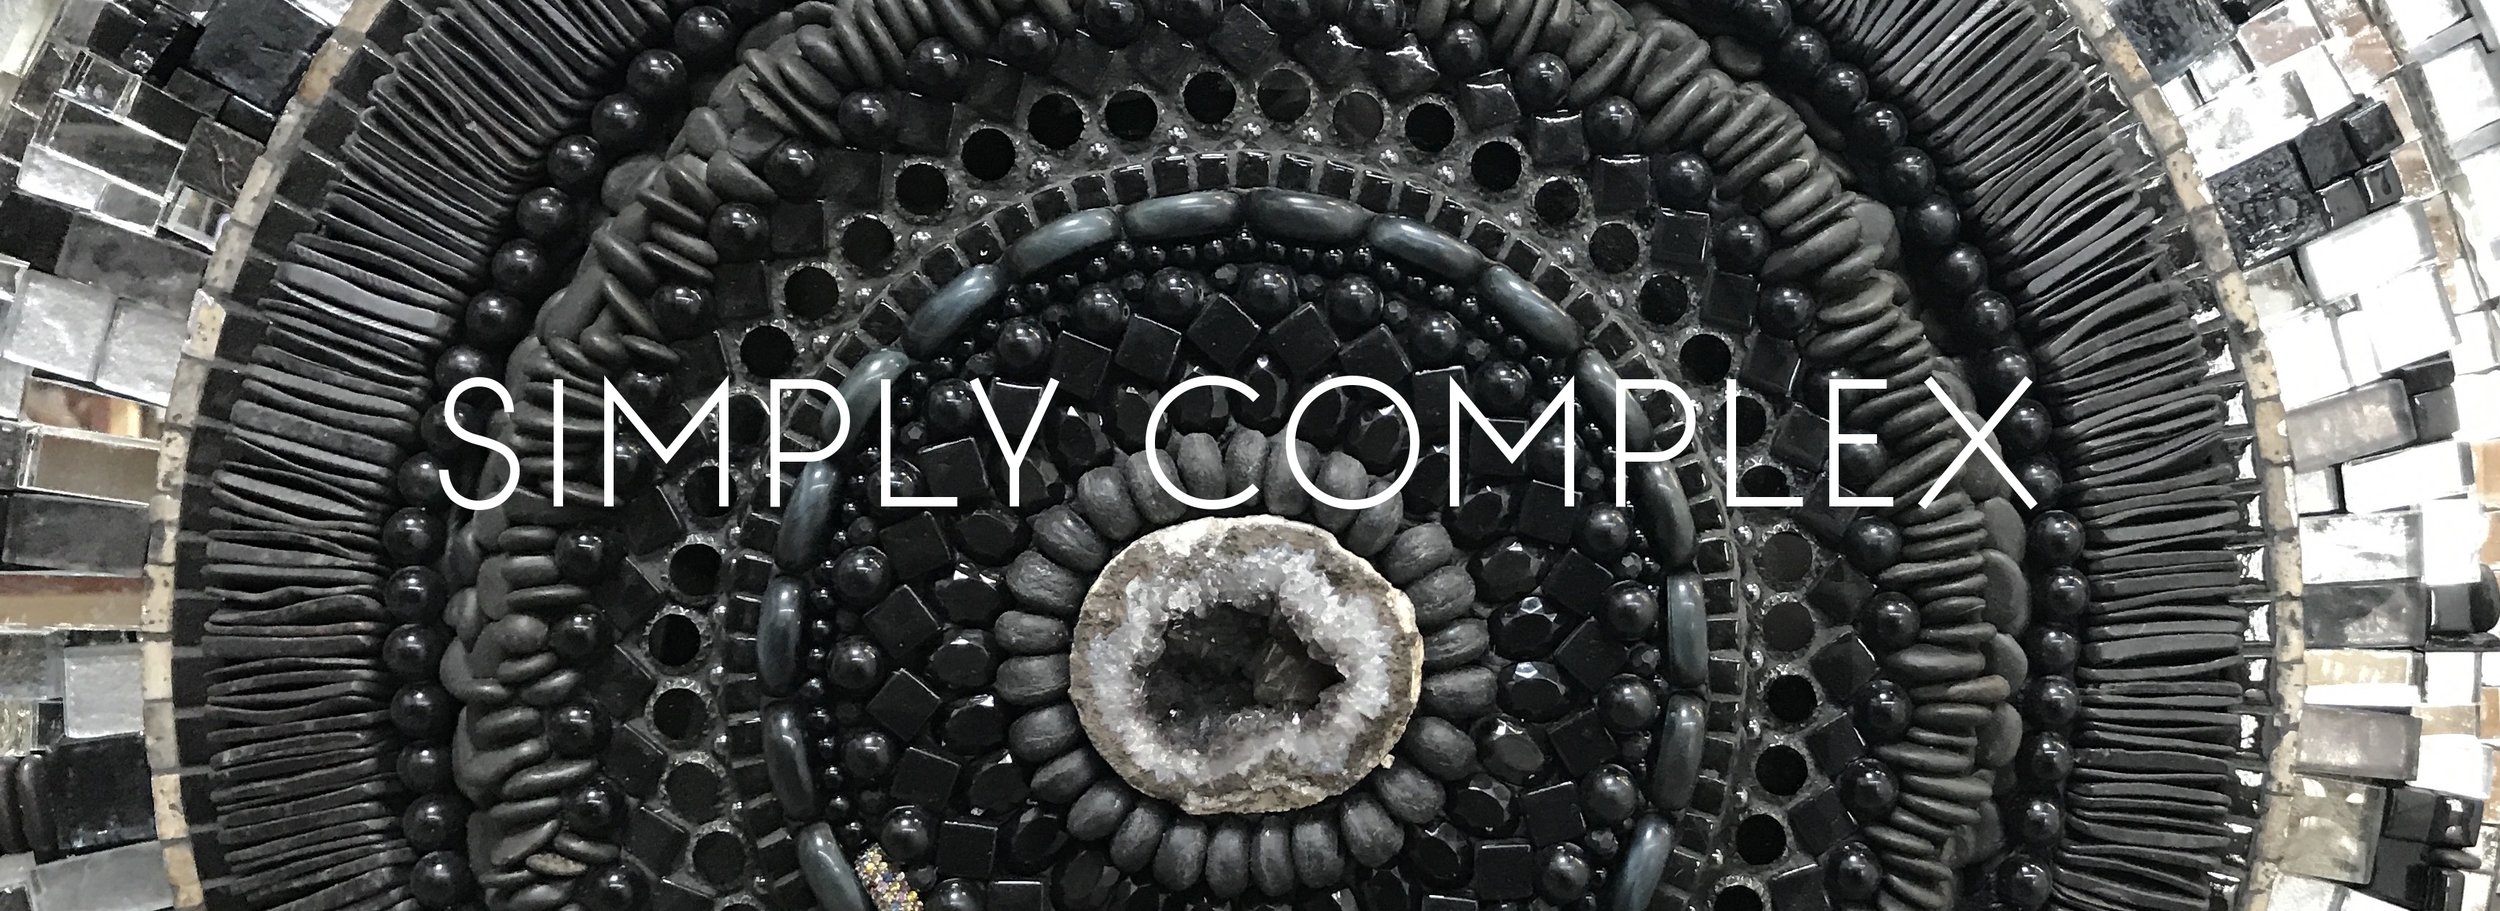 simply complex